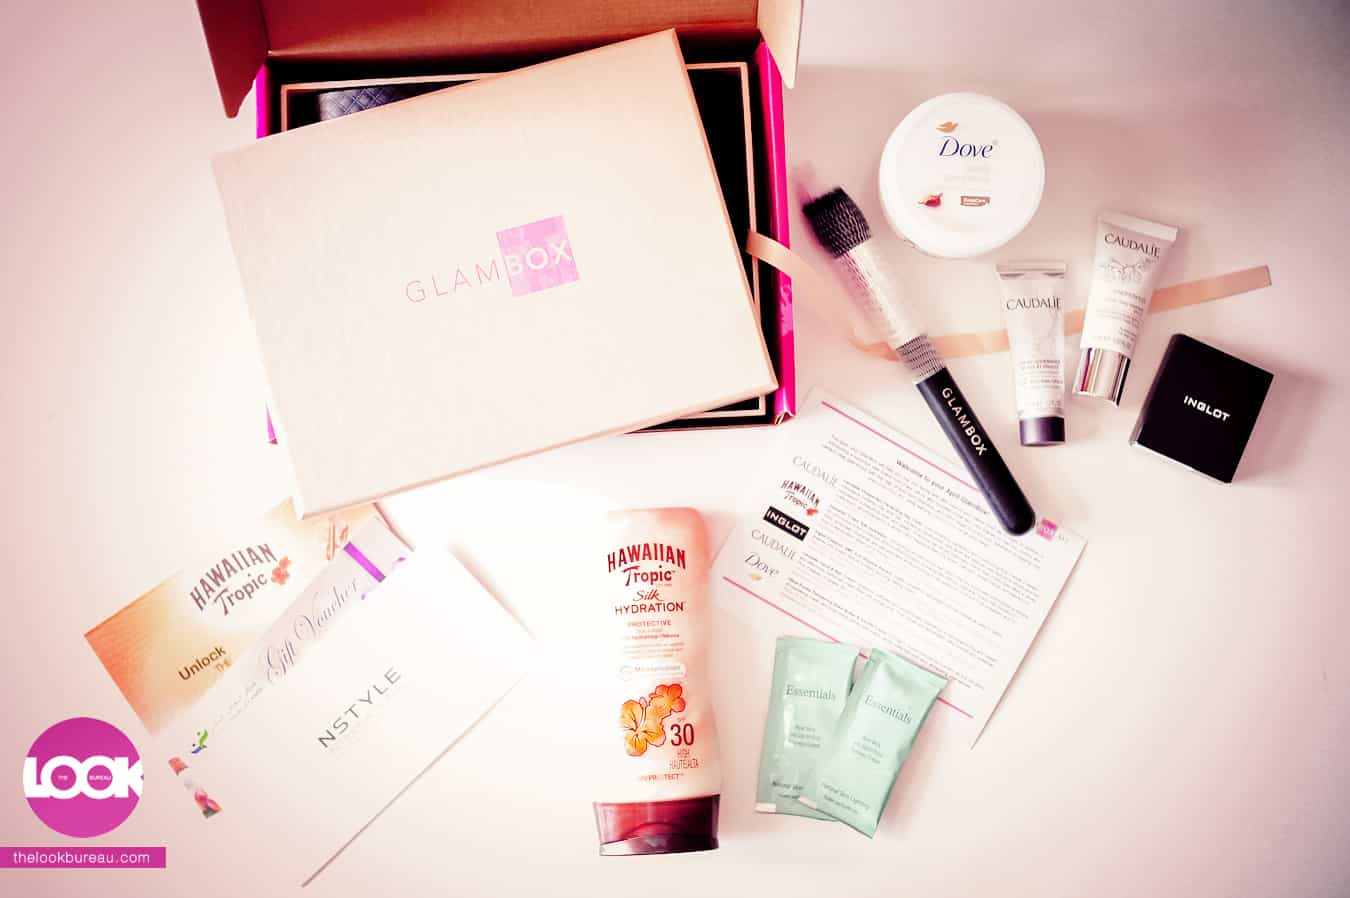 A Look Inside The April Glam Box